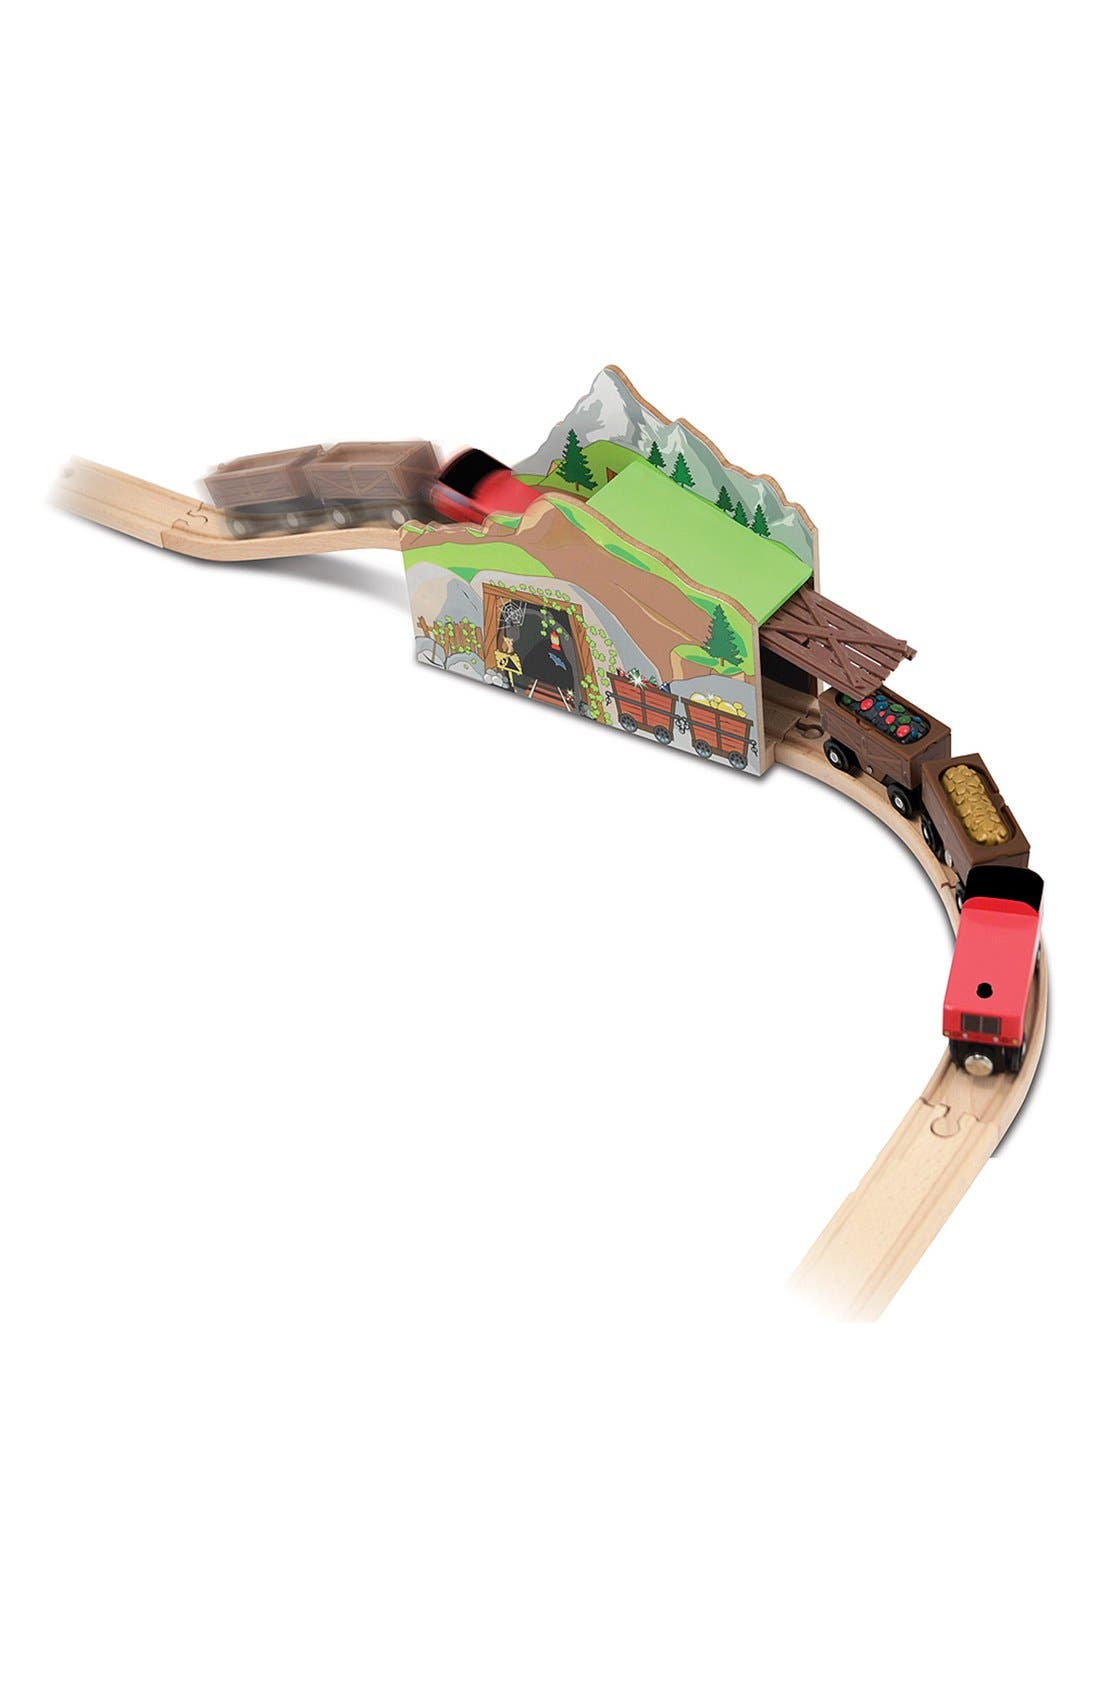 'Magic Mine Train Tunnel' Wooden Train Toy,                             Main thumbnail 1, color,                             200